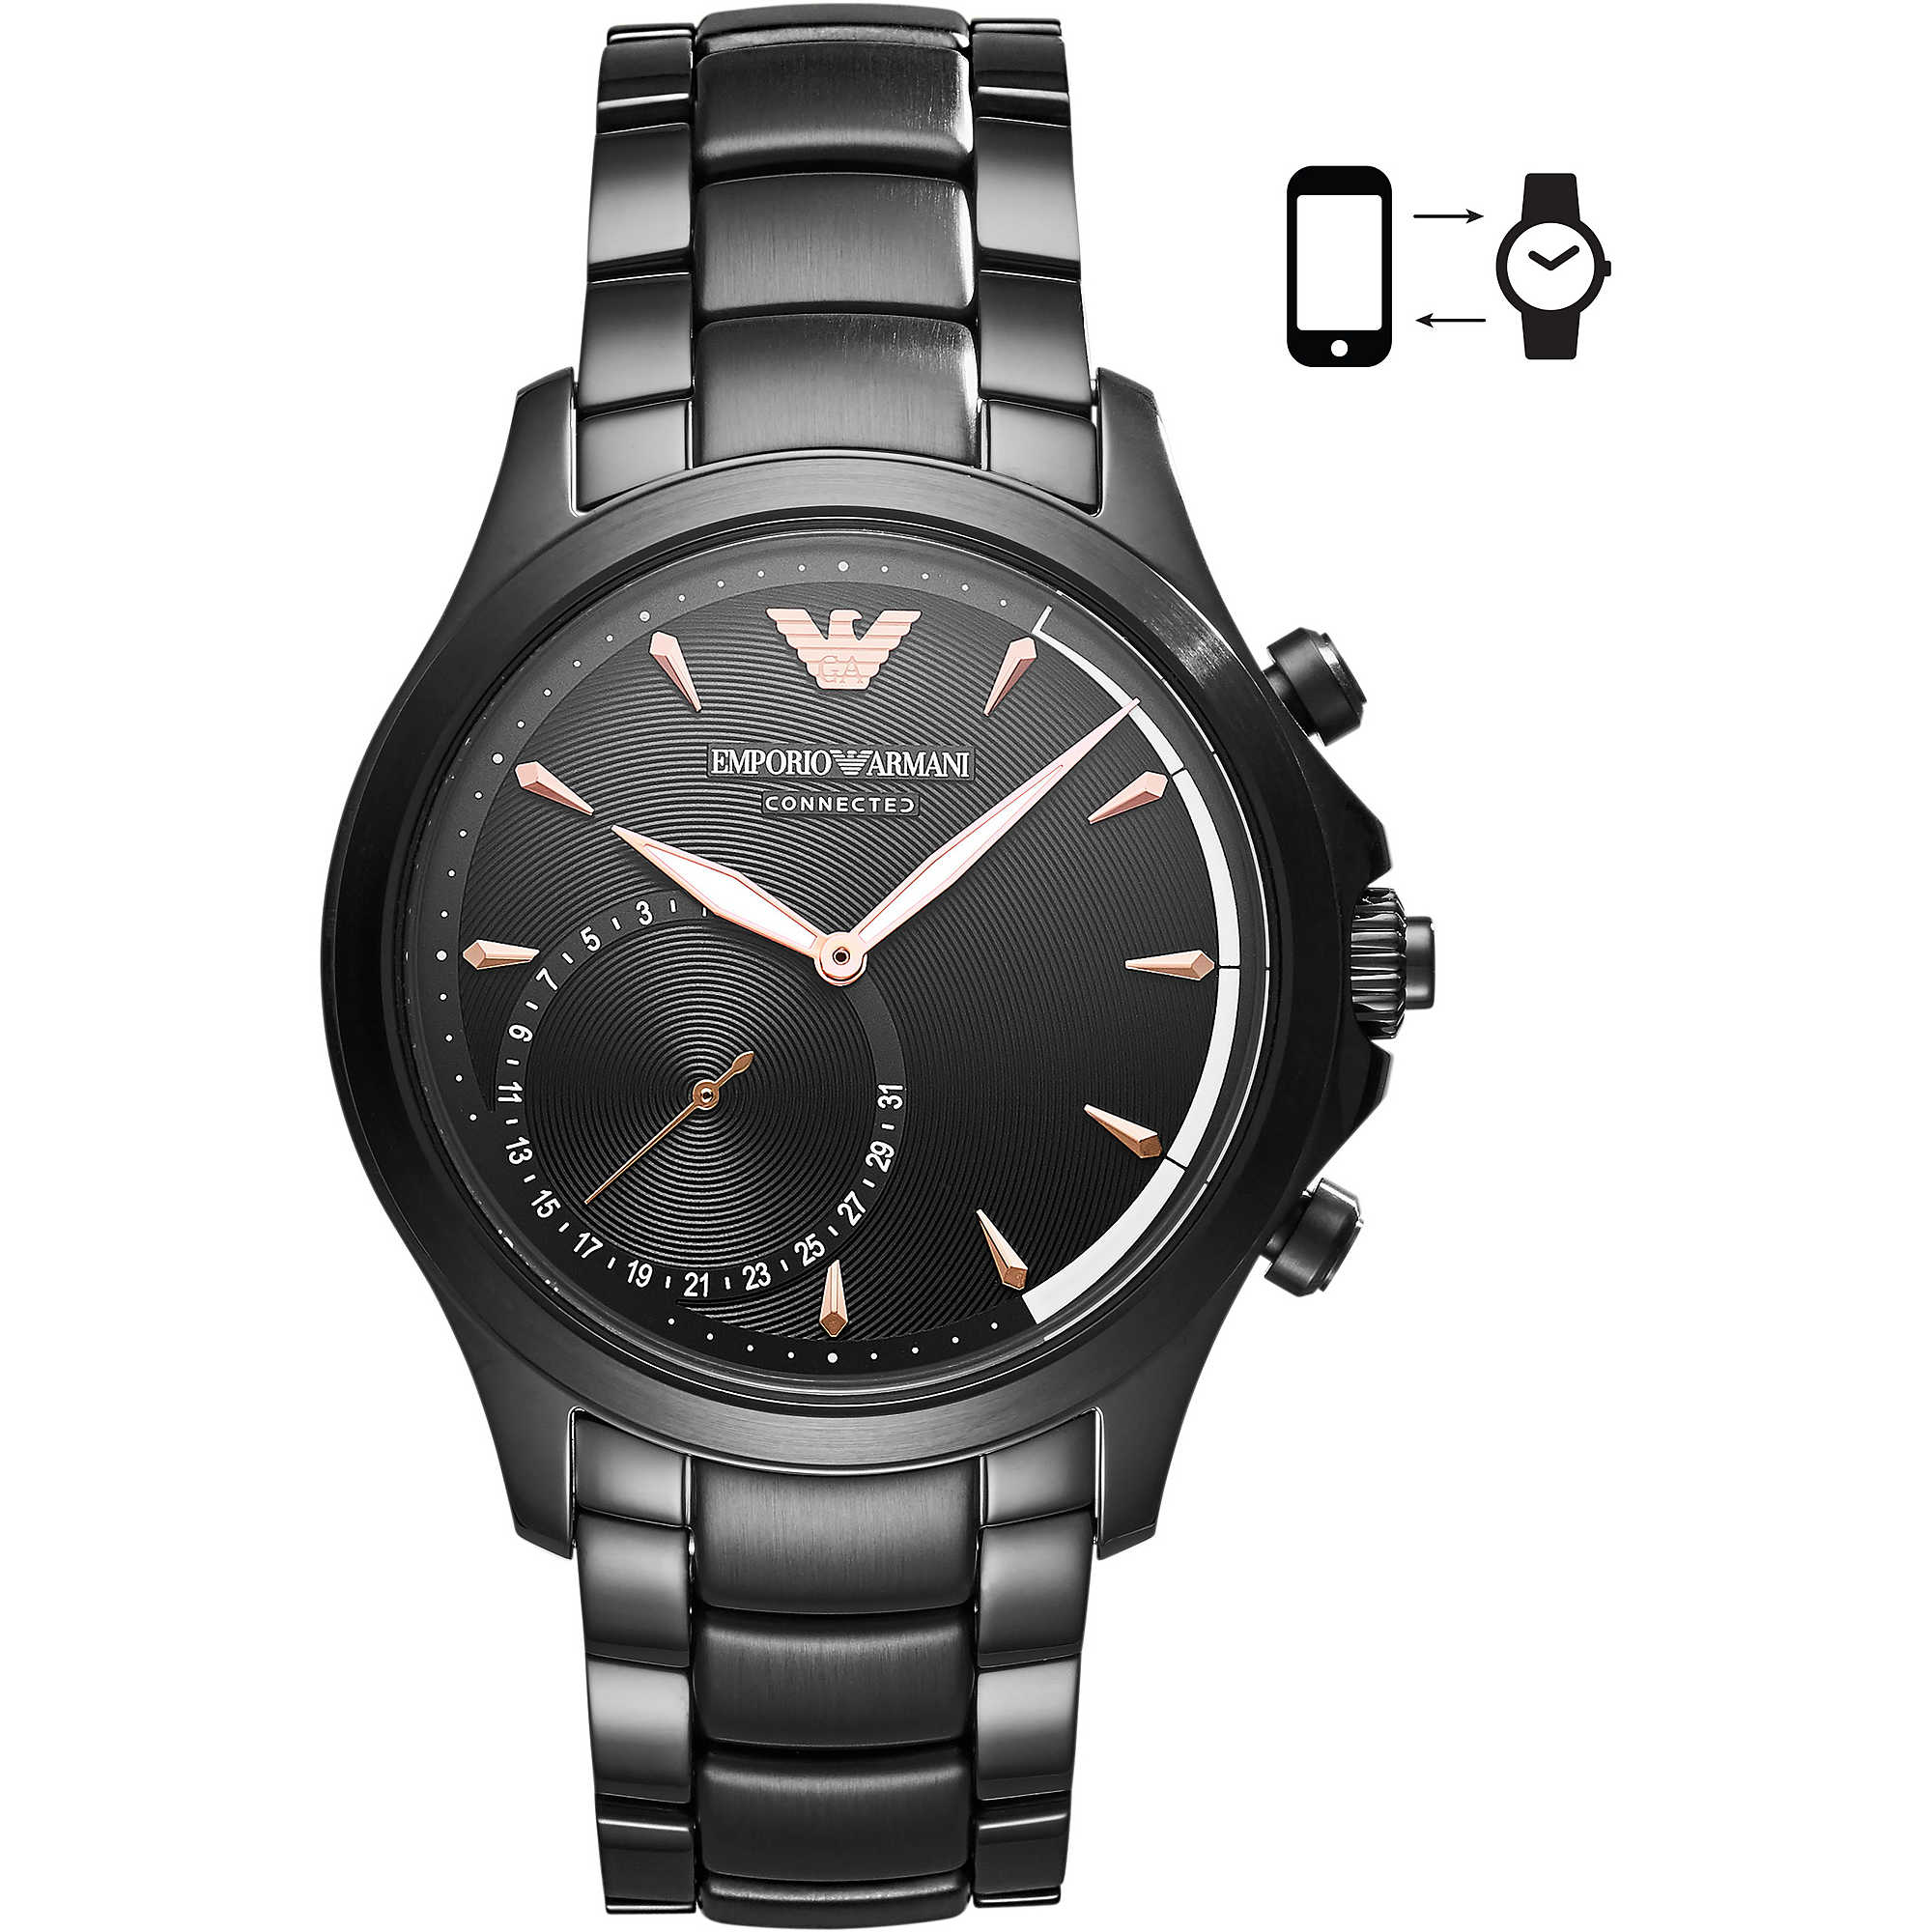 ver debuts watches date hybrid lens frederiqe manufacture smartwatch mobile y digital launches maker frederique constant